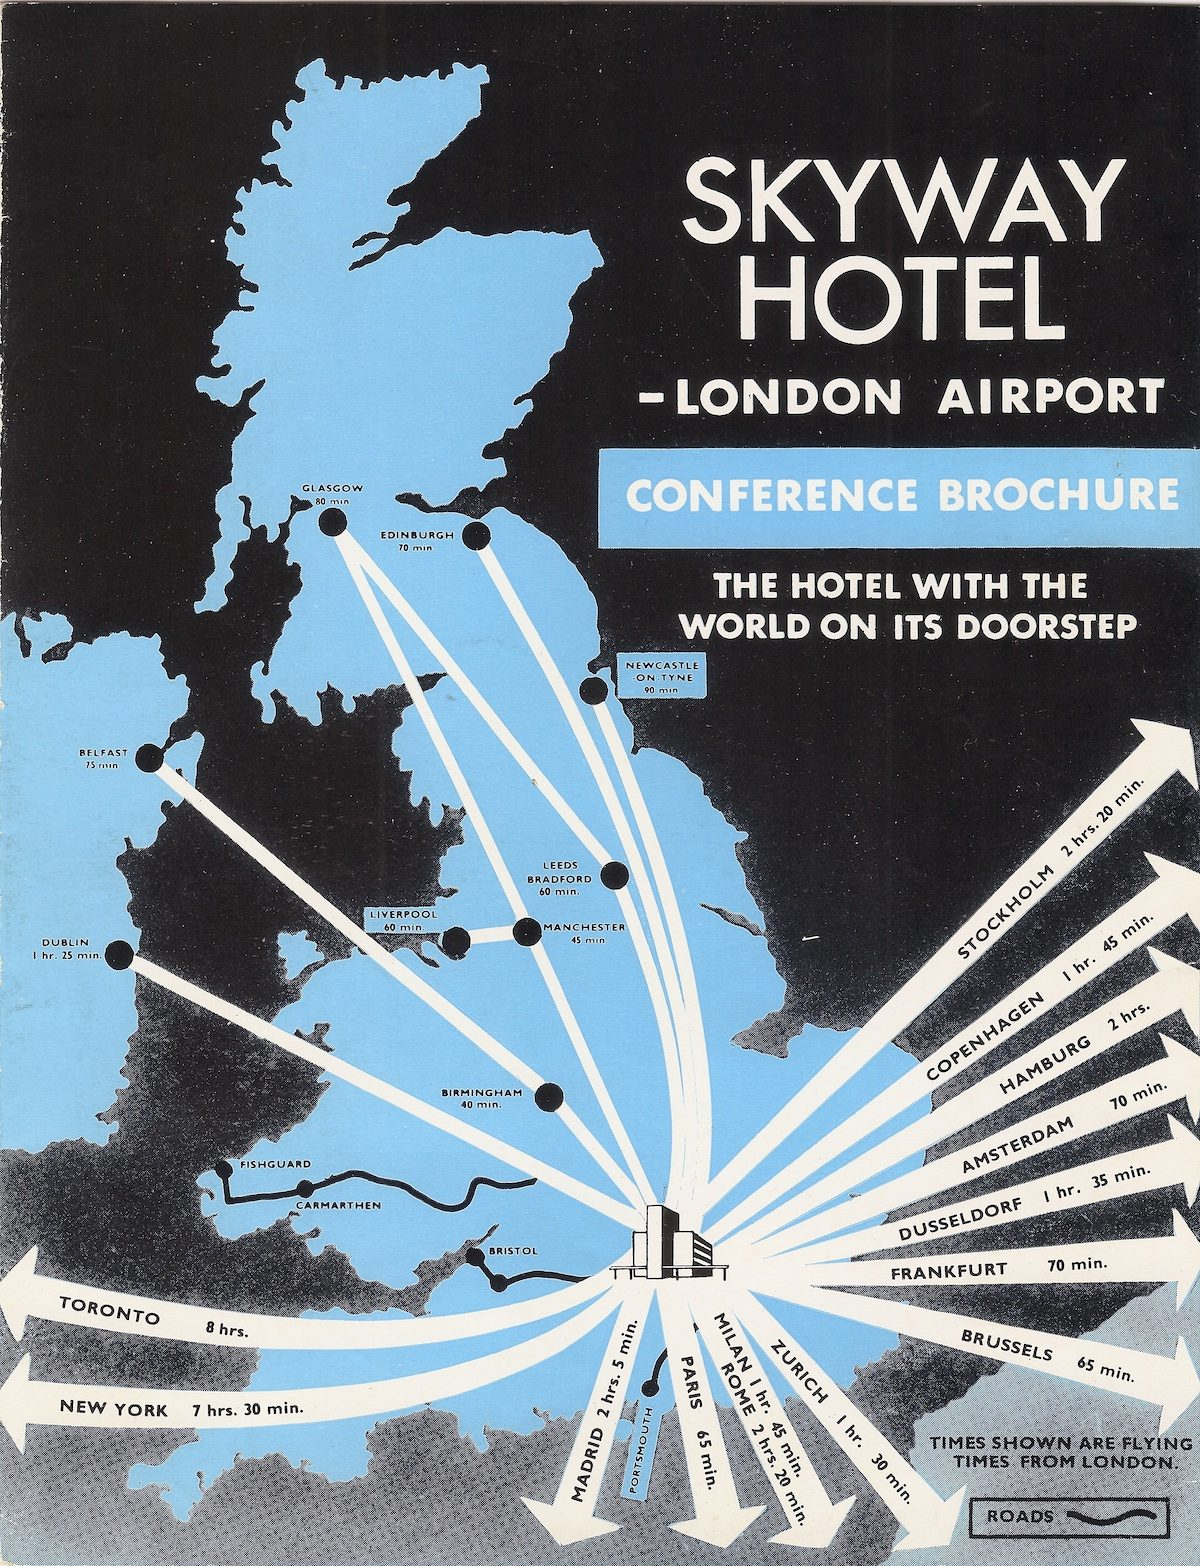 Skyway Hotel, London Heathrow Airport - conference brochure, c1960 The Skyway Hotel graphically demonstrating that they were at the centre of the world. This brochure is very 'of its age' - the high-tech, glamour of the airport - the hub of the modern world